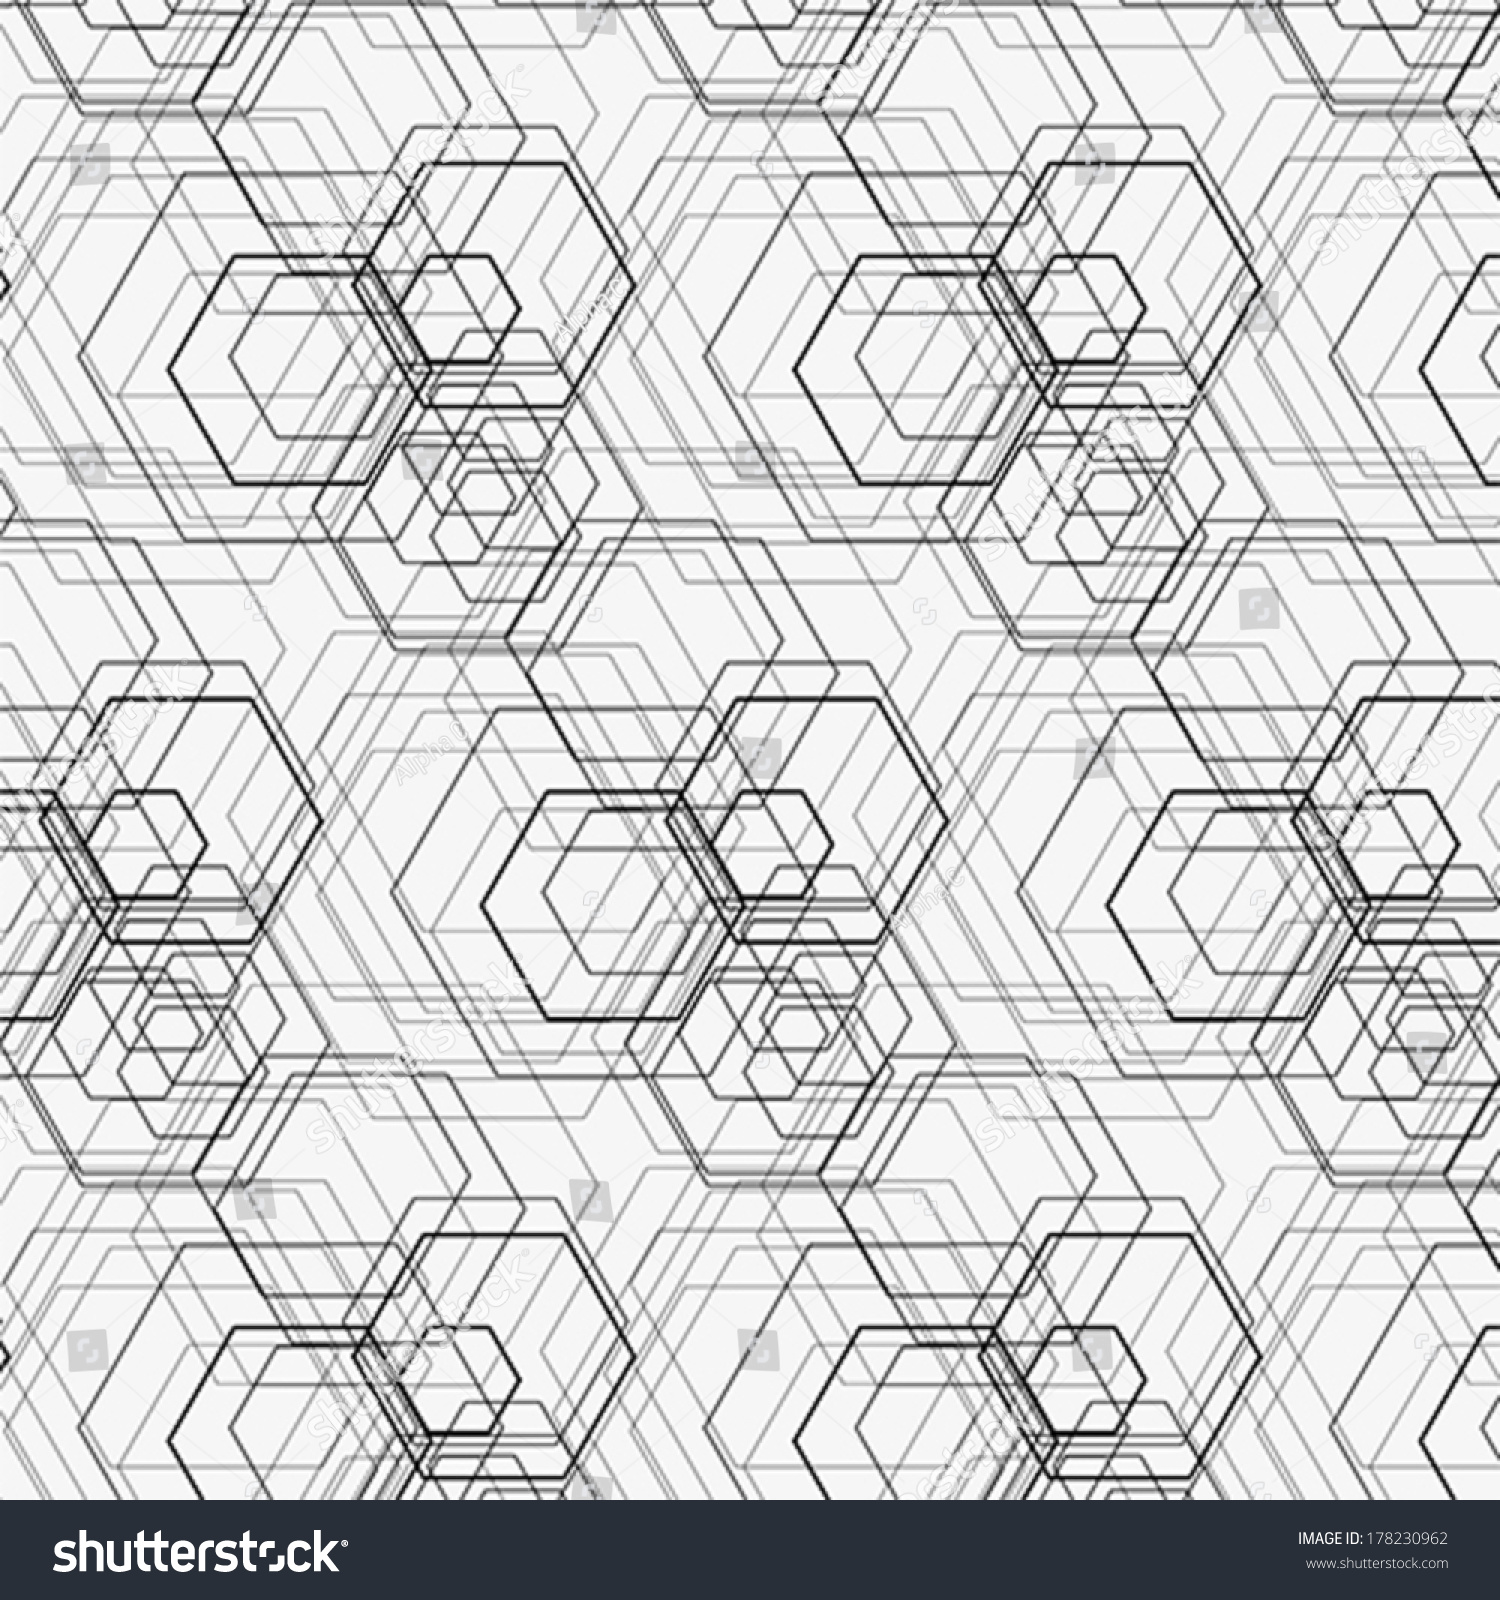 Pretty 1 Button Template Tall 1 Year Experience Resume In Java J2ee Square 10 Steps To Creating A Resume 100 Bill Template Young 100 Square Pool Template Gray120mm Fan Template Hexagon Pattern Including Seamless Sample Swatch Stock Vector ..